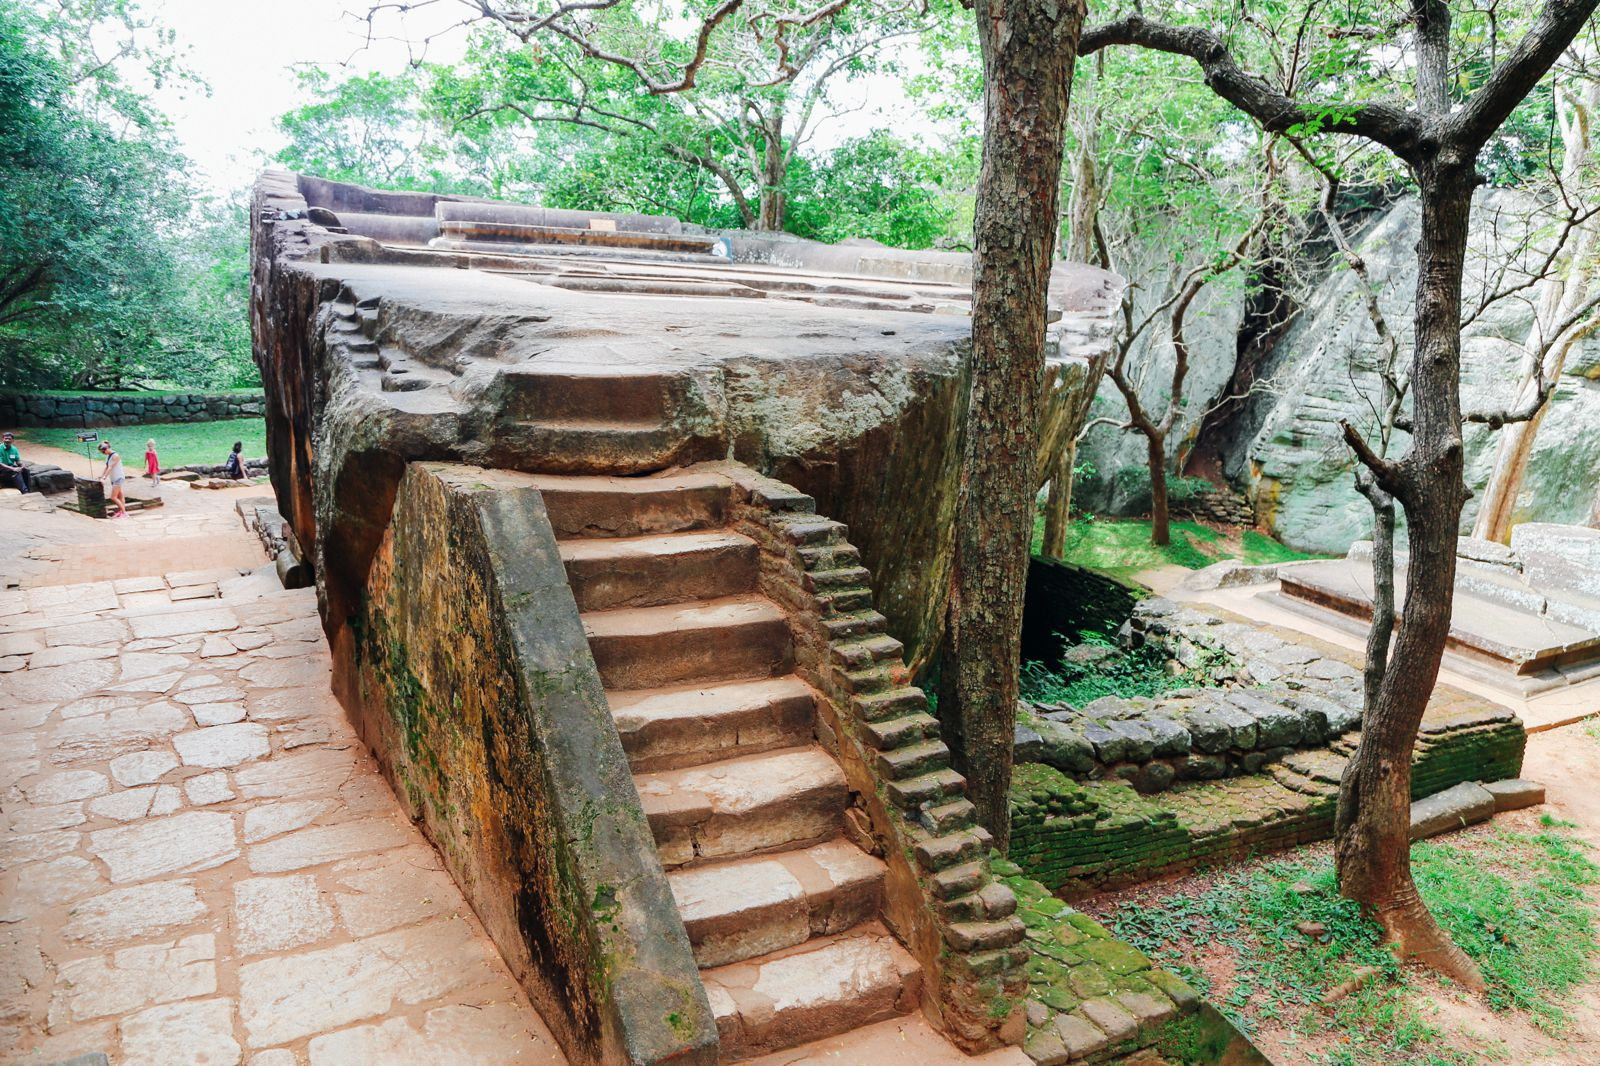 The Complete Guide To Climbing Sri Lanka's UNESCO World Heritage Site Of Sigiriya - Lion Rock (66)